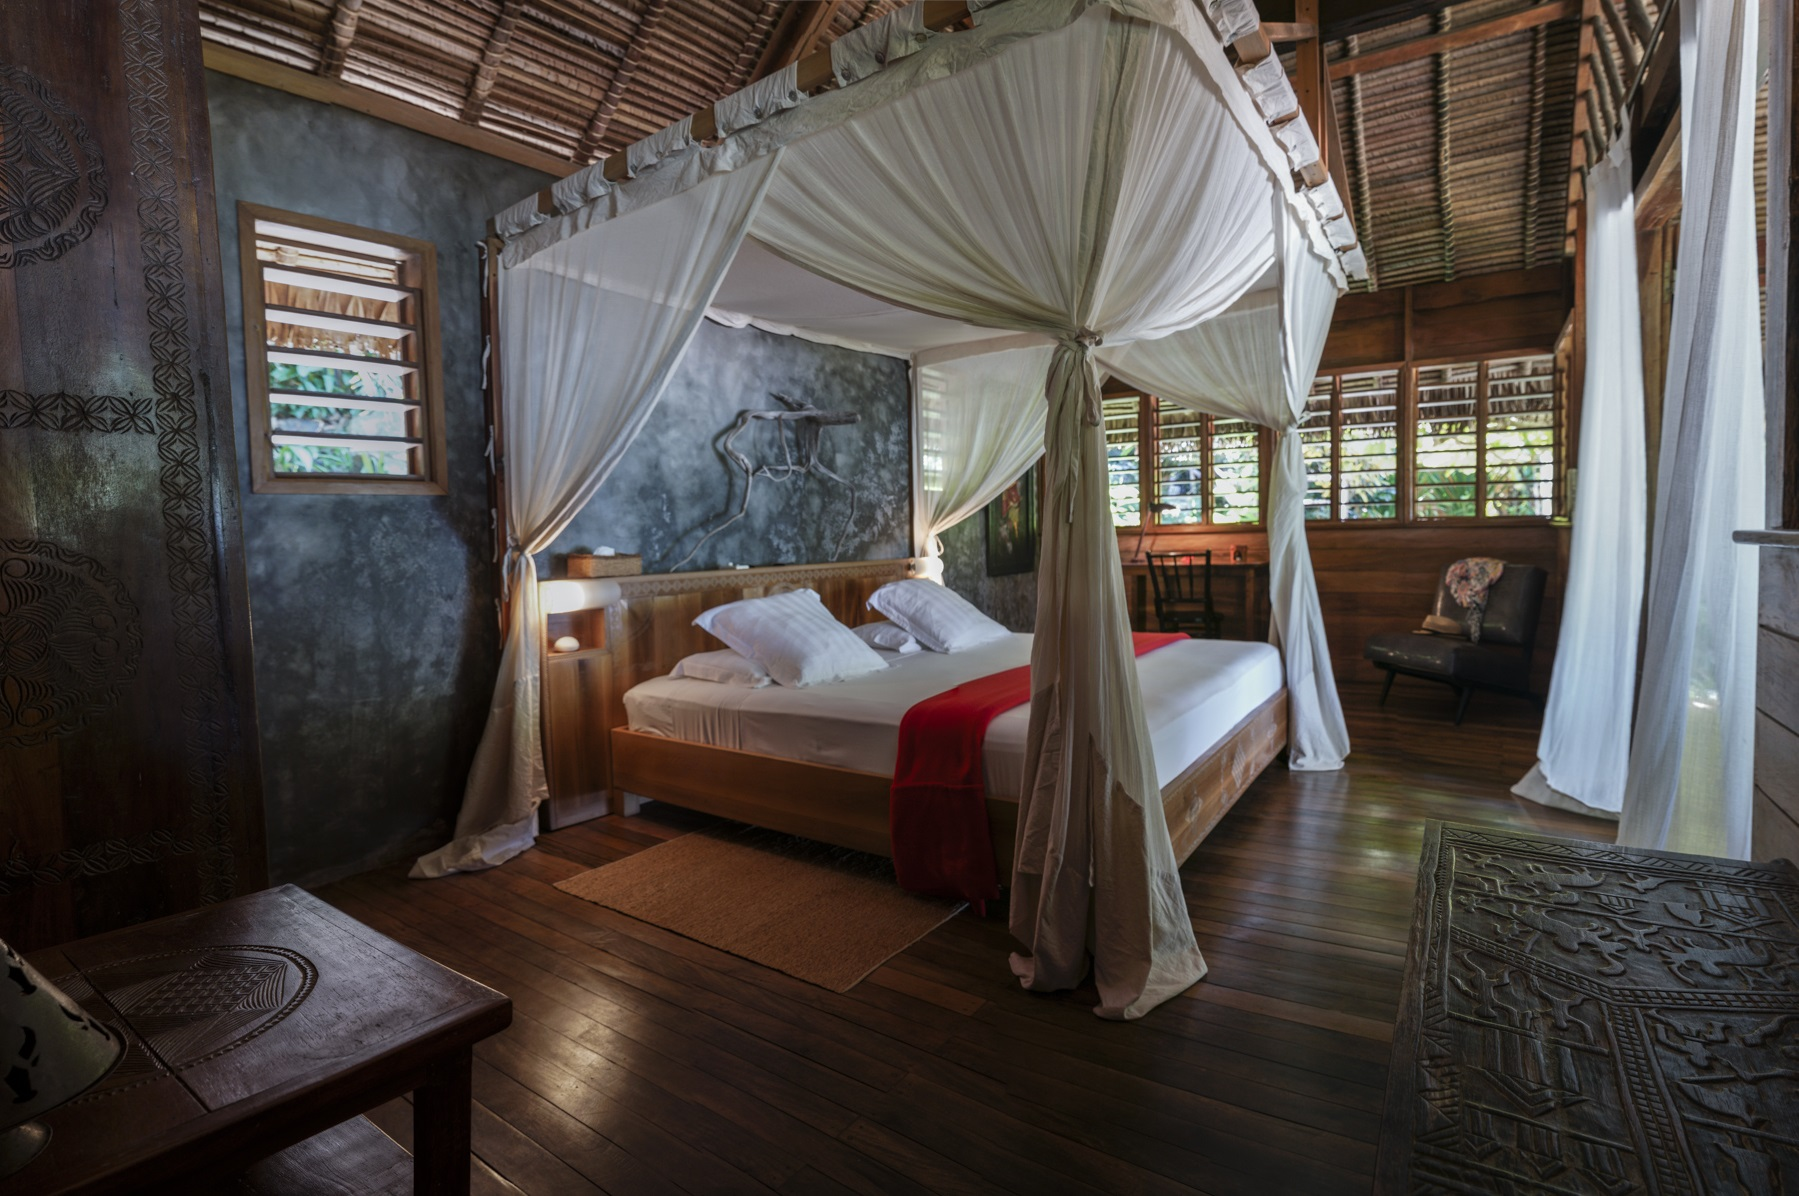 Tsara-komba-lodge-nosy-be-madagascar-wadi-destination-bedroom.jpg